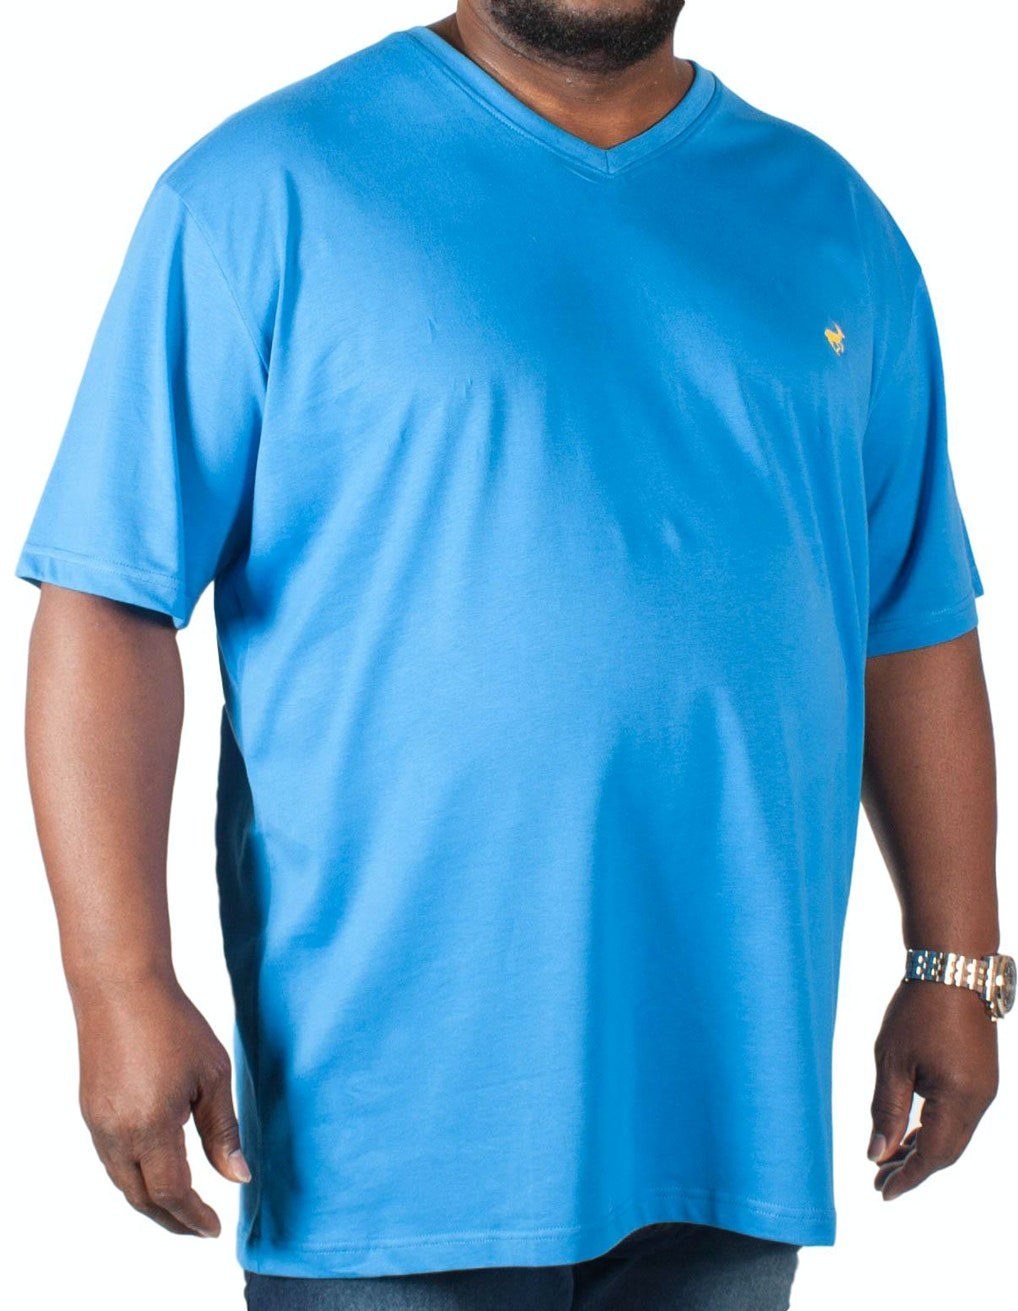 Bigdude Signature V-Neck T-Shirt Blue Tall